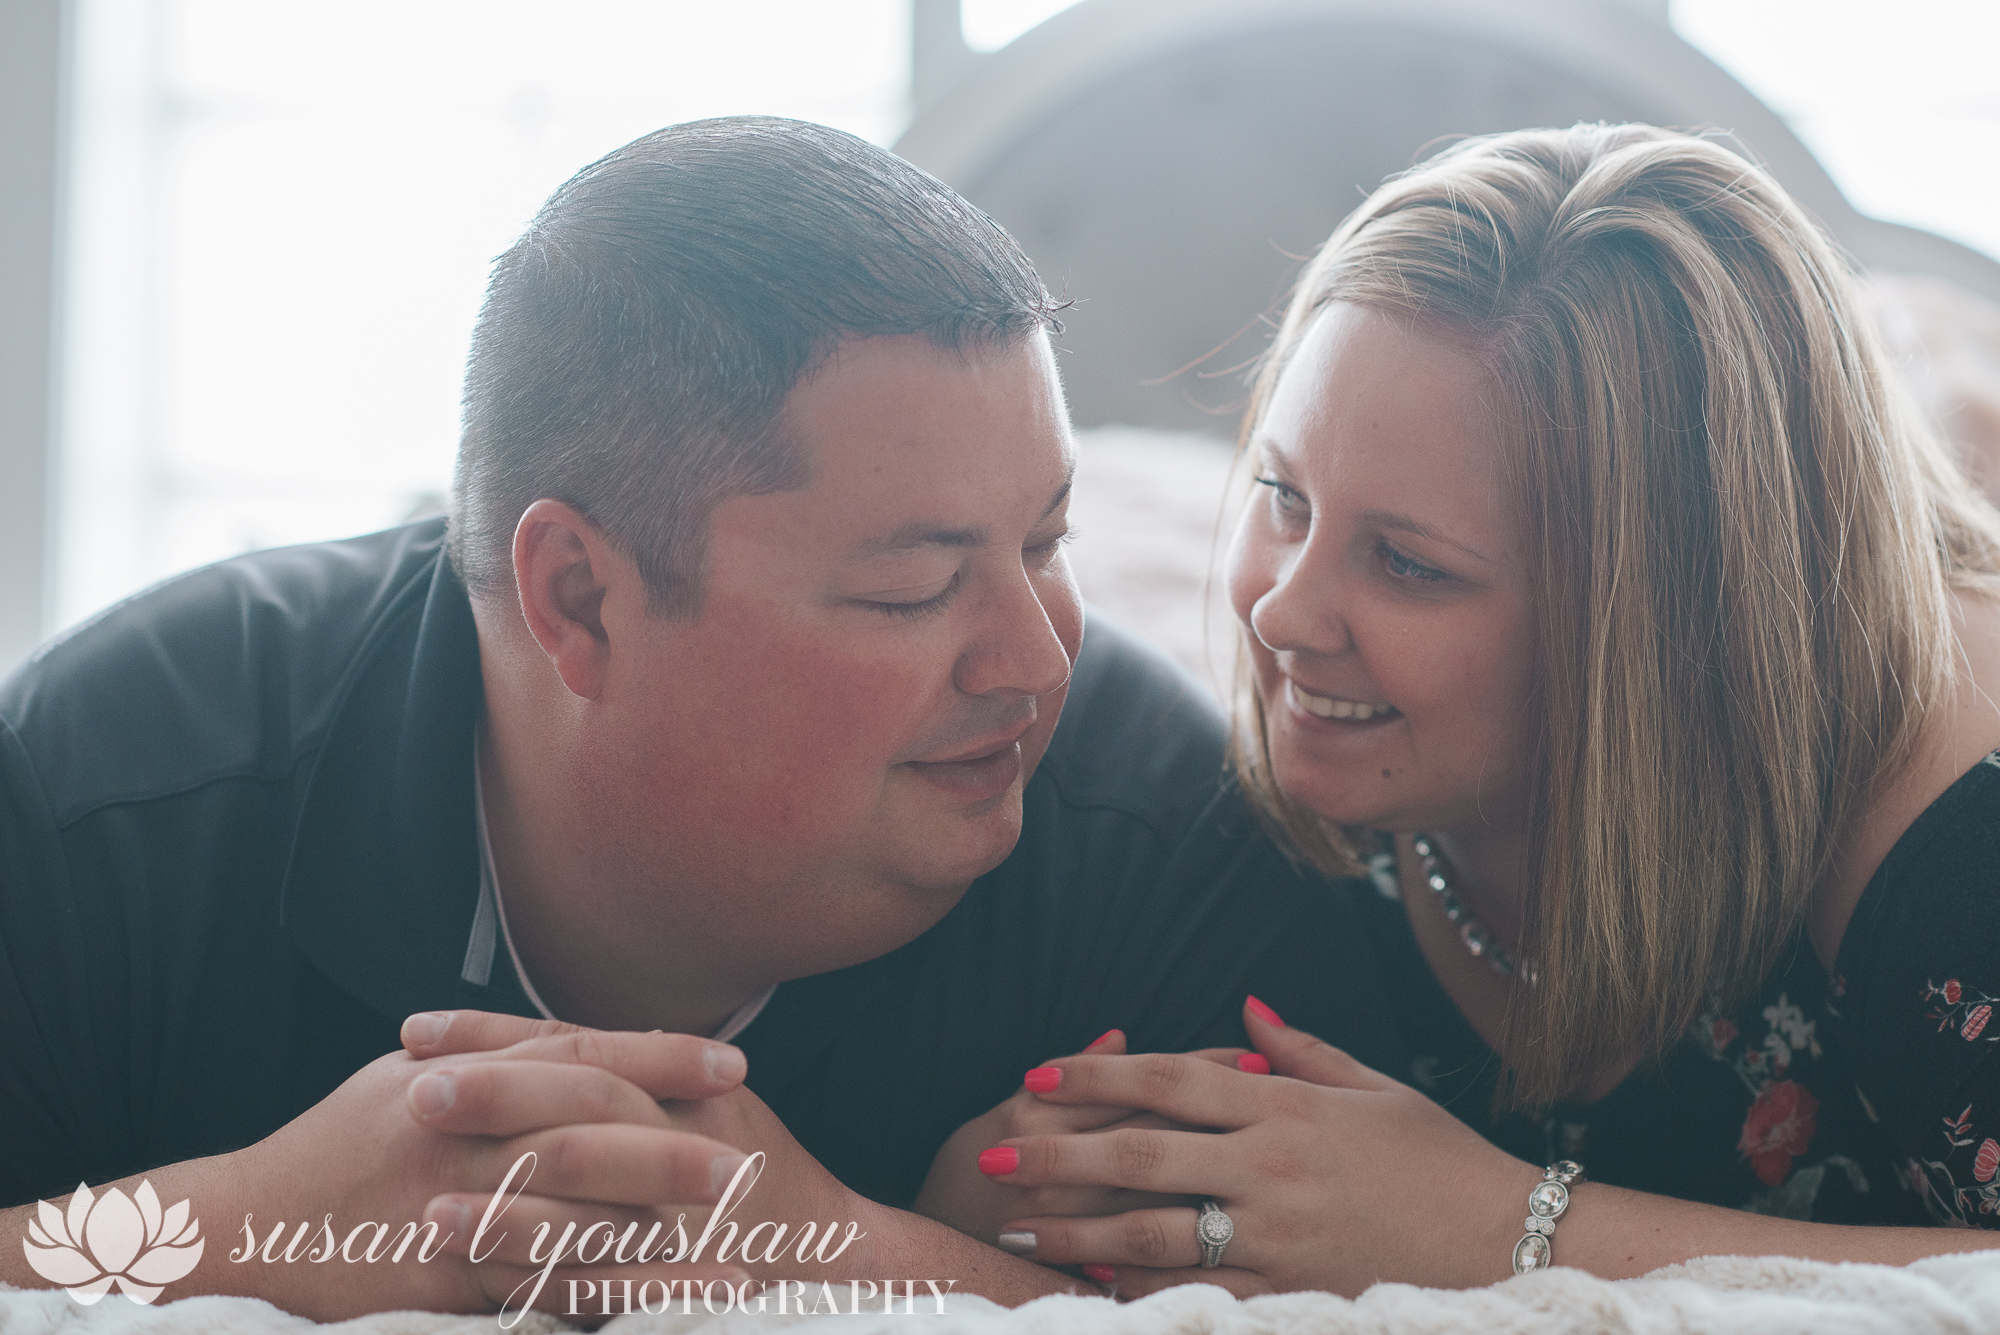 BLOG Love Mini Sessions 06-28-2018 SLY Photography LLC-10.jpg